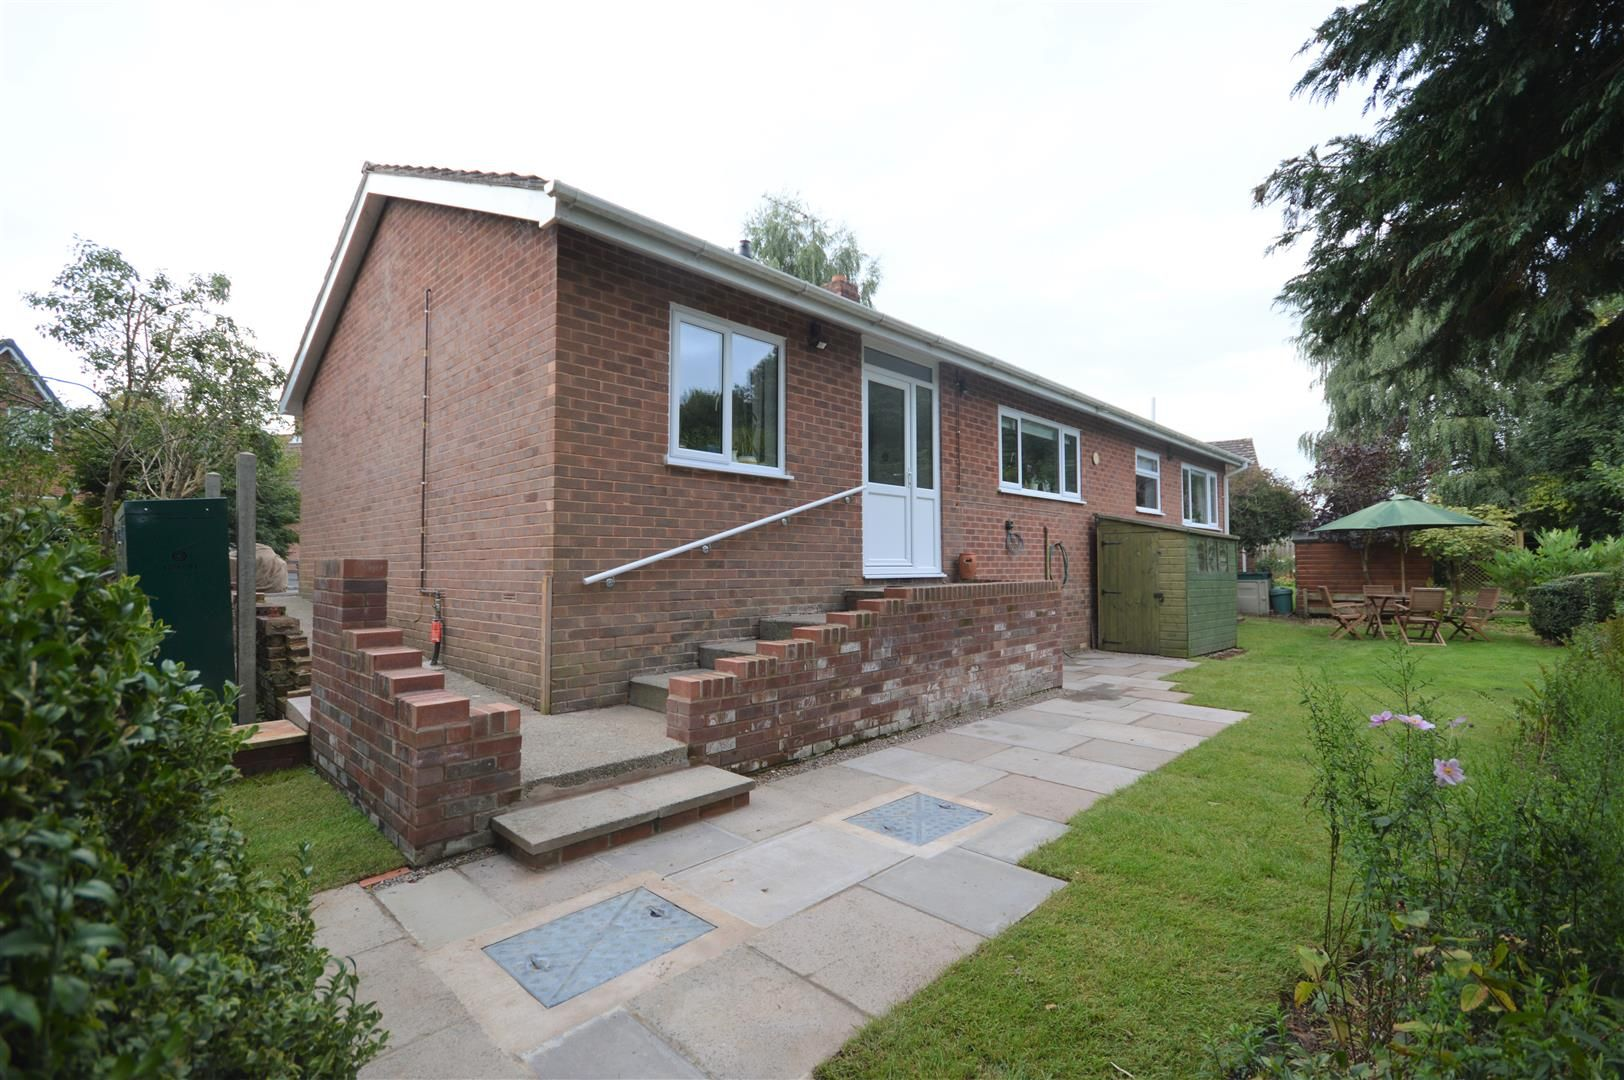 3 bed detached-bungalow for sale in Orleton 14